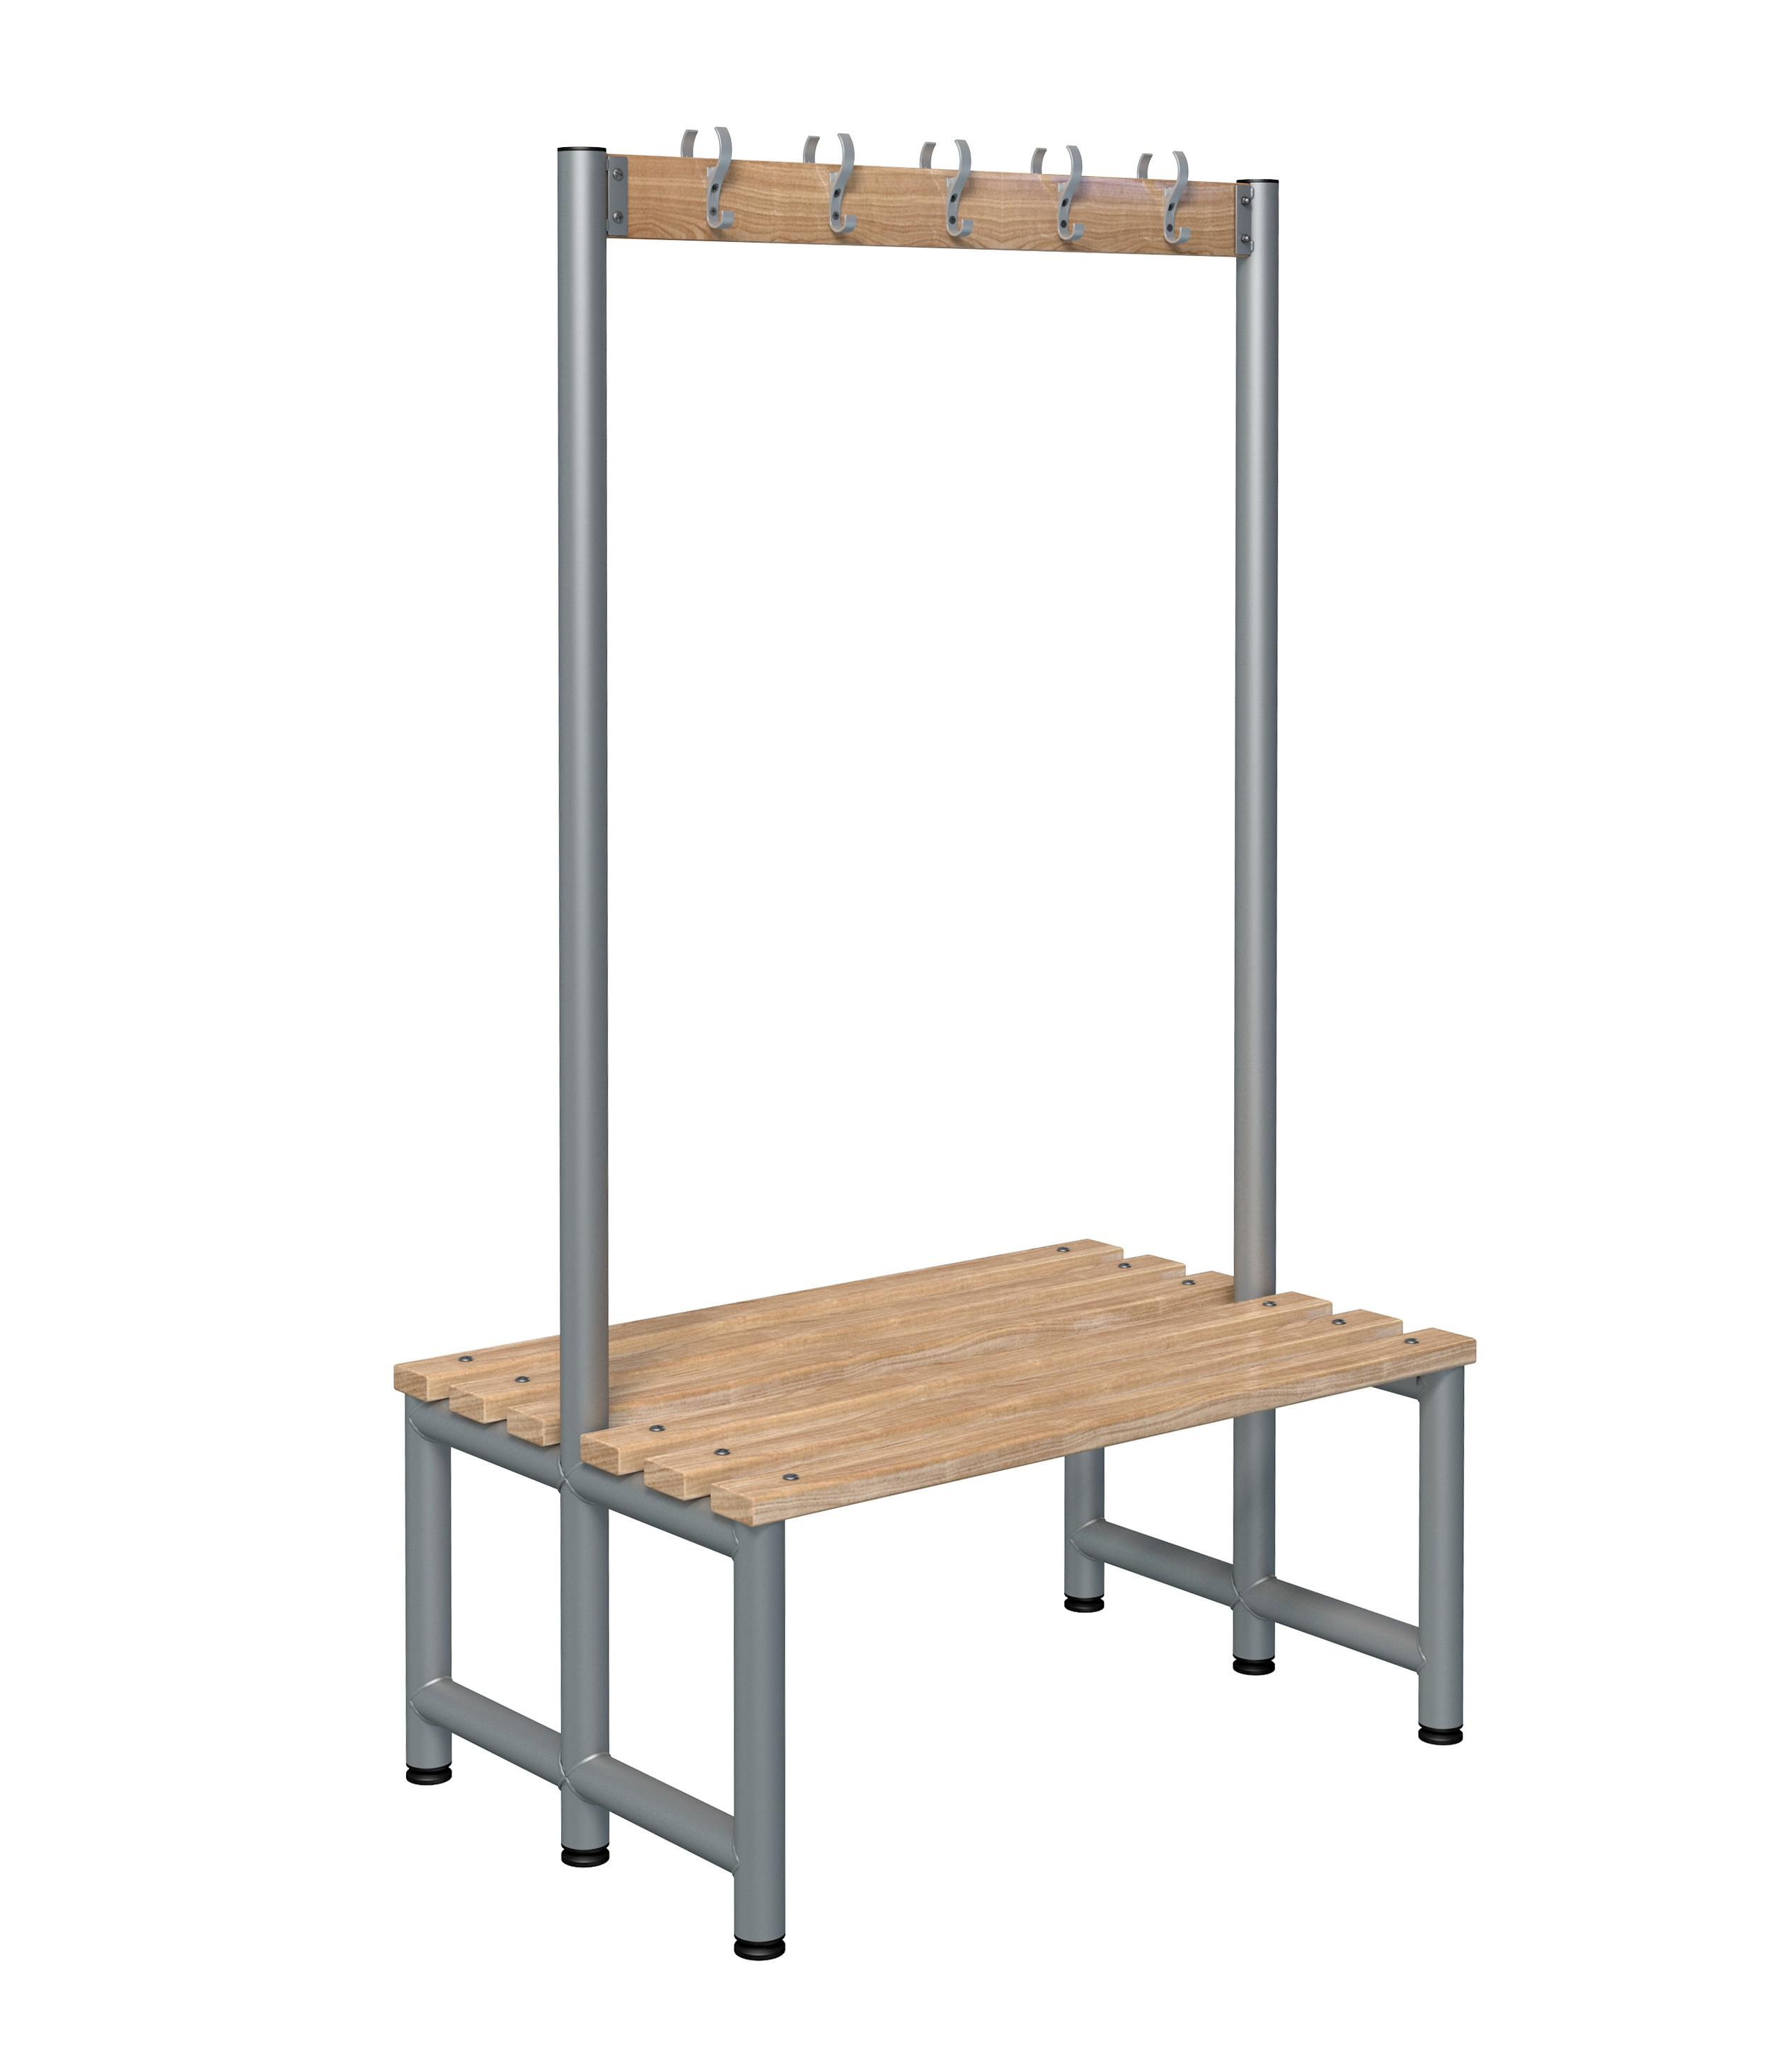 Double Sided Hook Bench Type D -  Junior